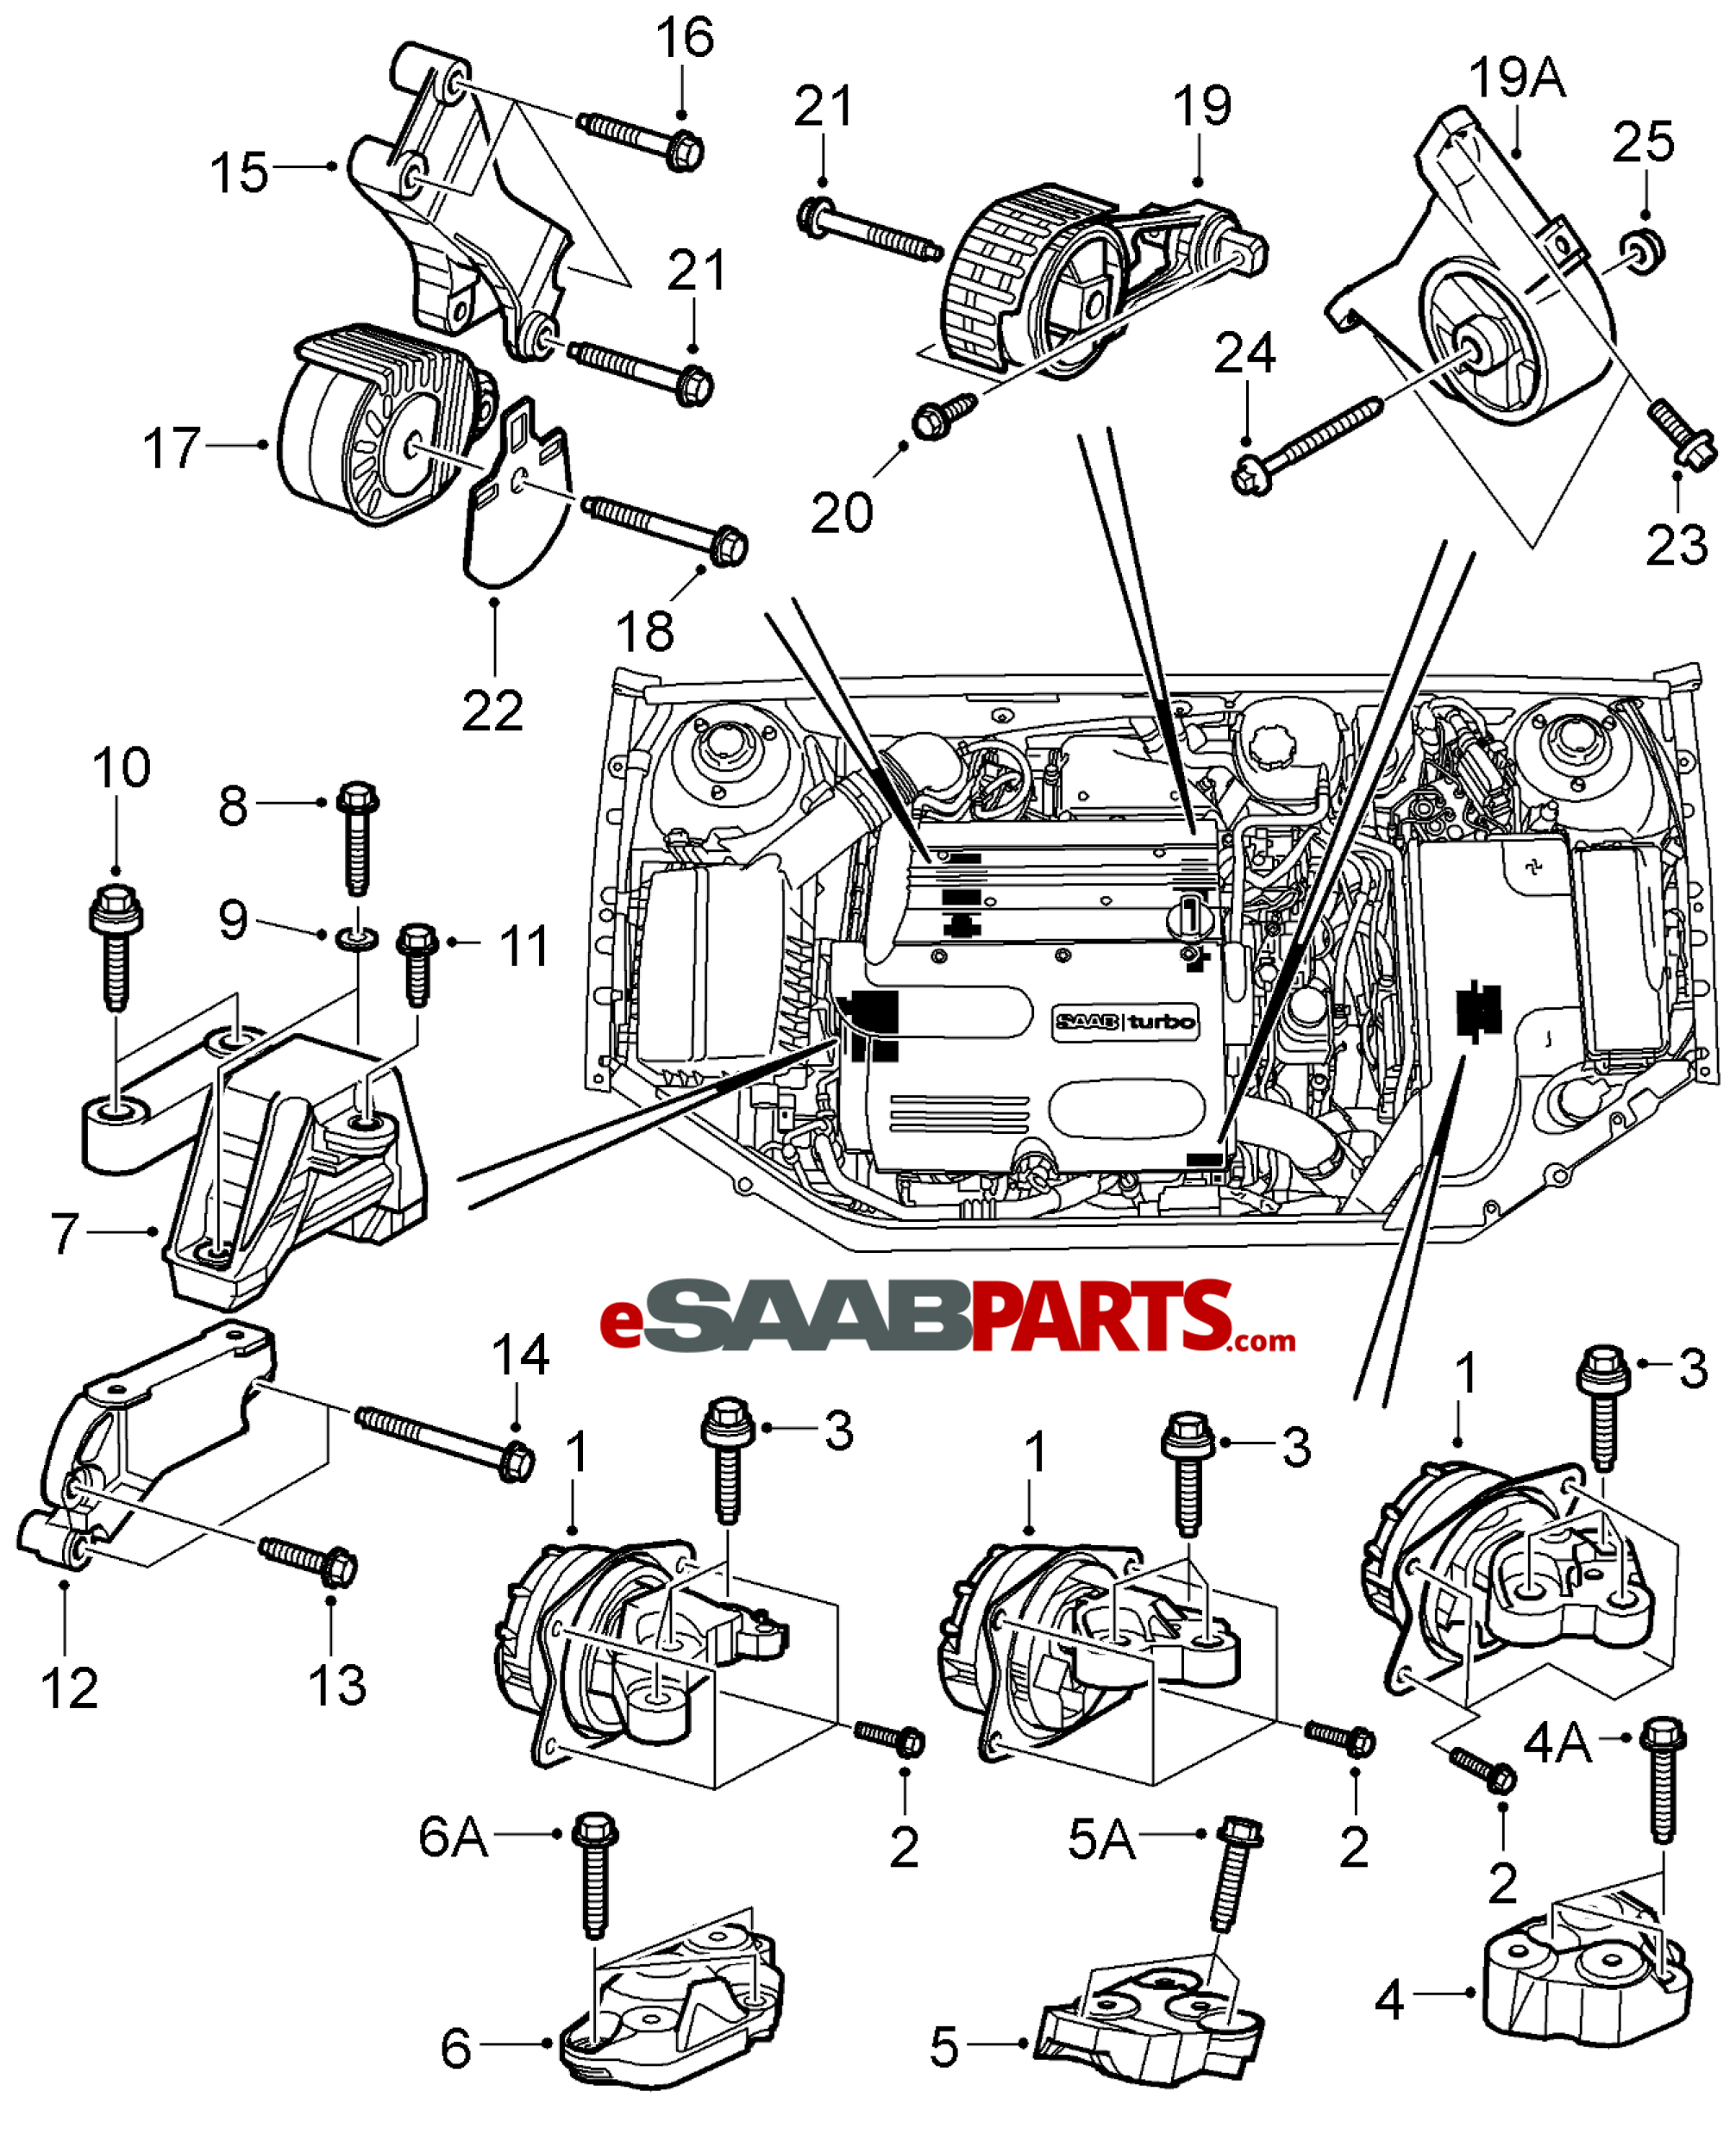 saab engine mounts diagram wiring library u2022 rh lahood co saab 900 se engine diagram saab 900 engine bay diagram